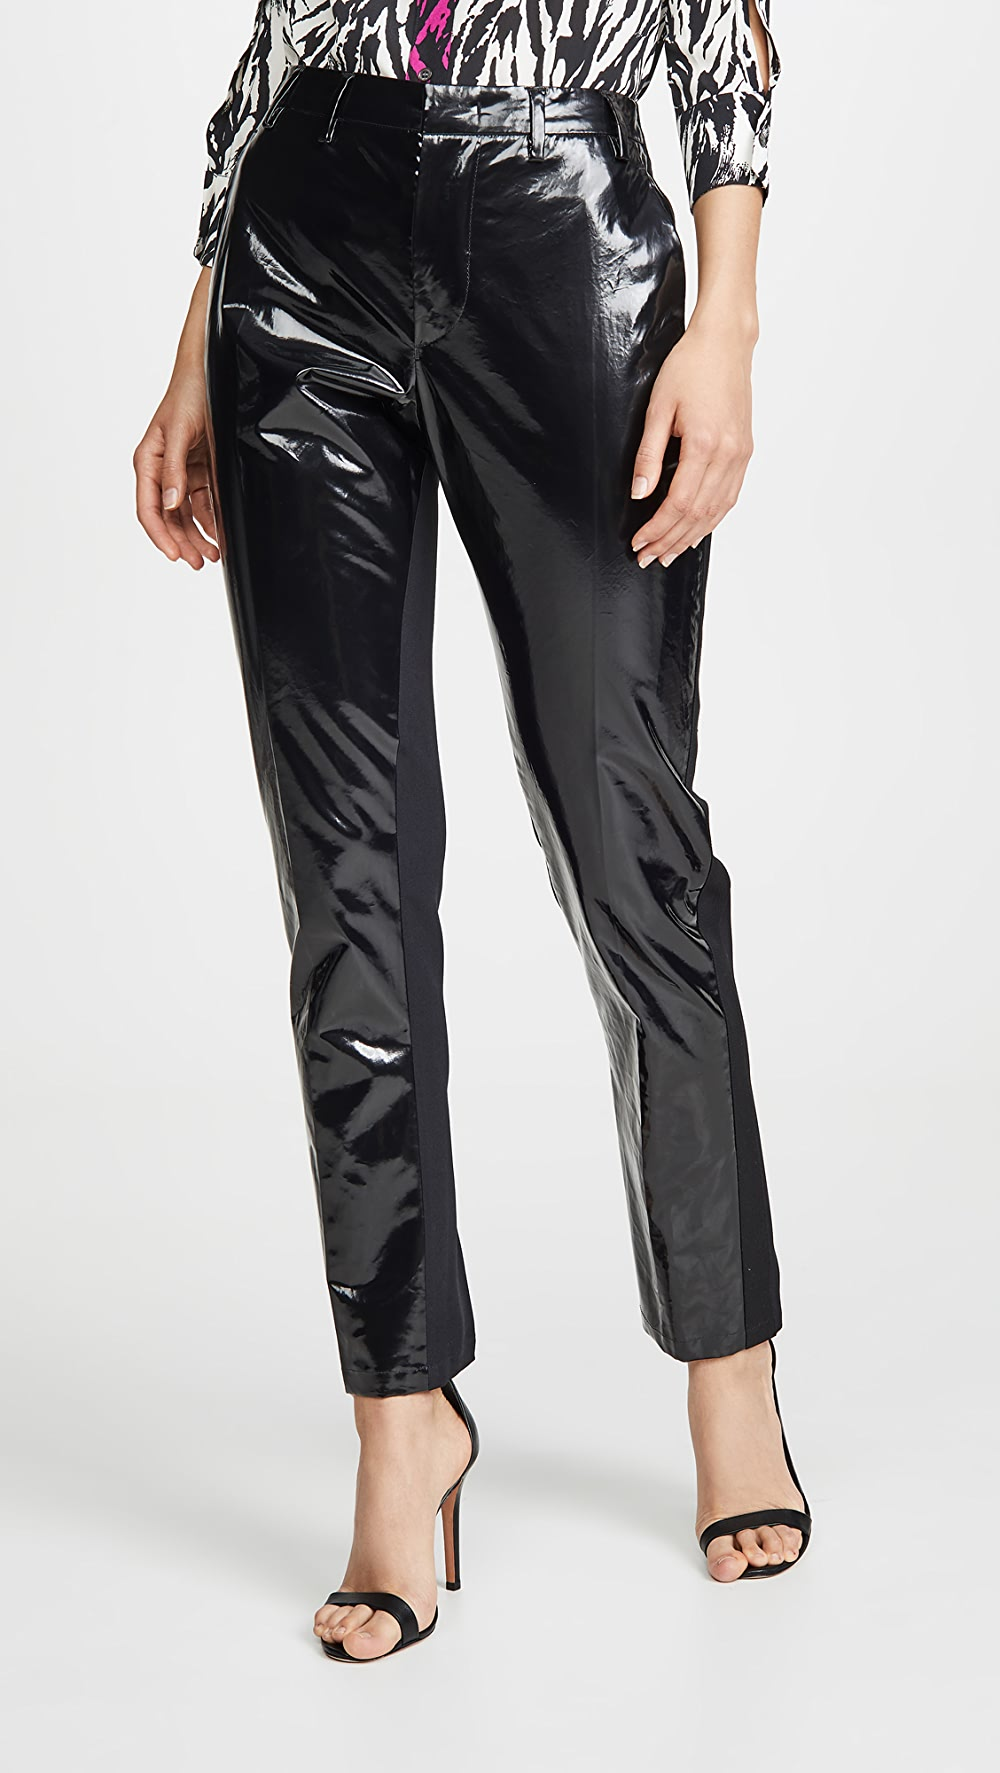 Motivated No. 21 - Patent Pants Relieving Heat And Sunstroke